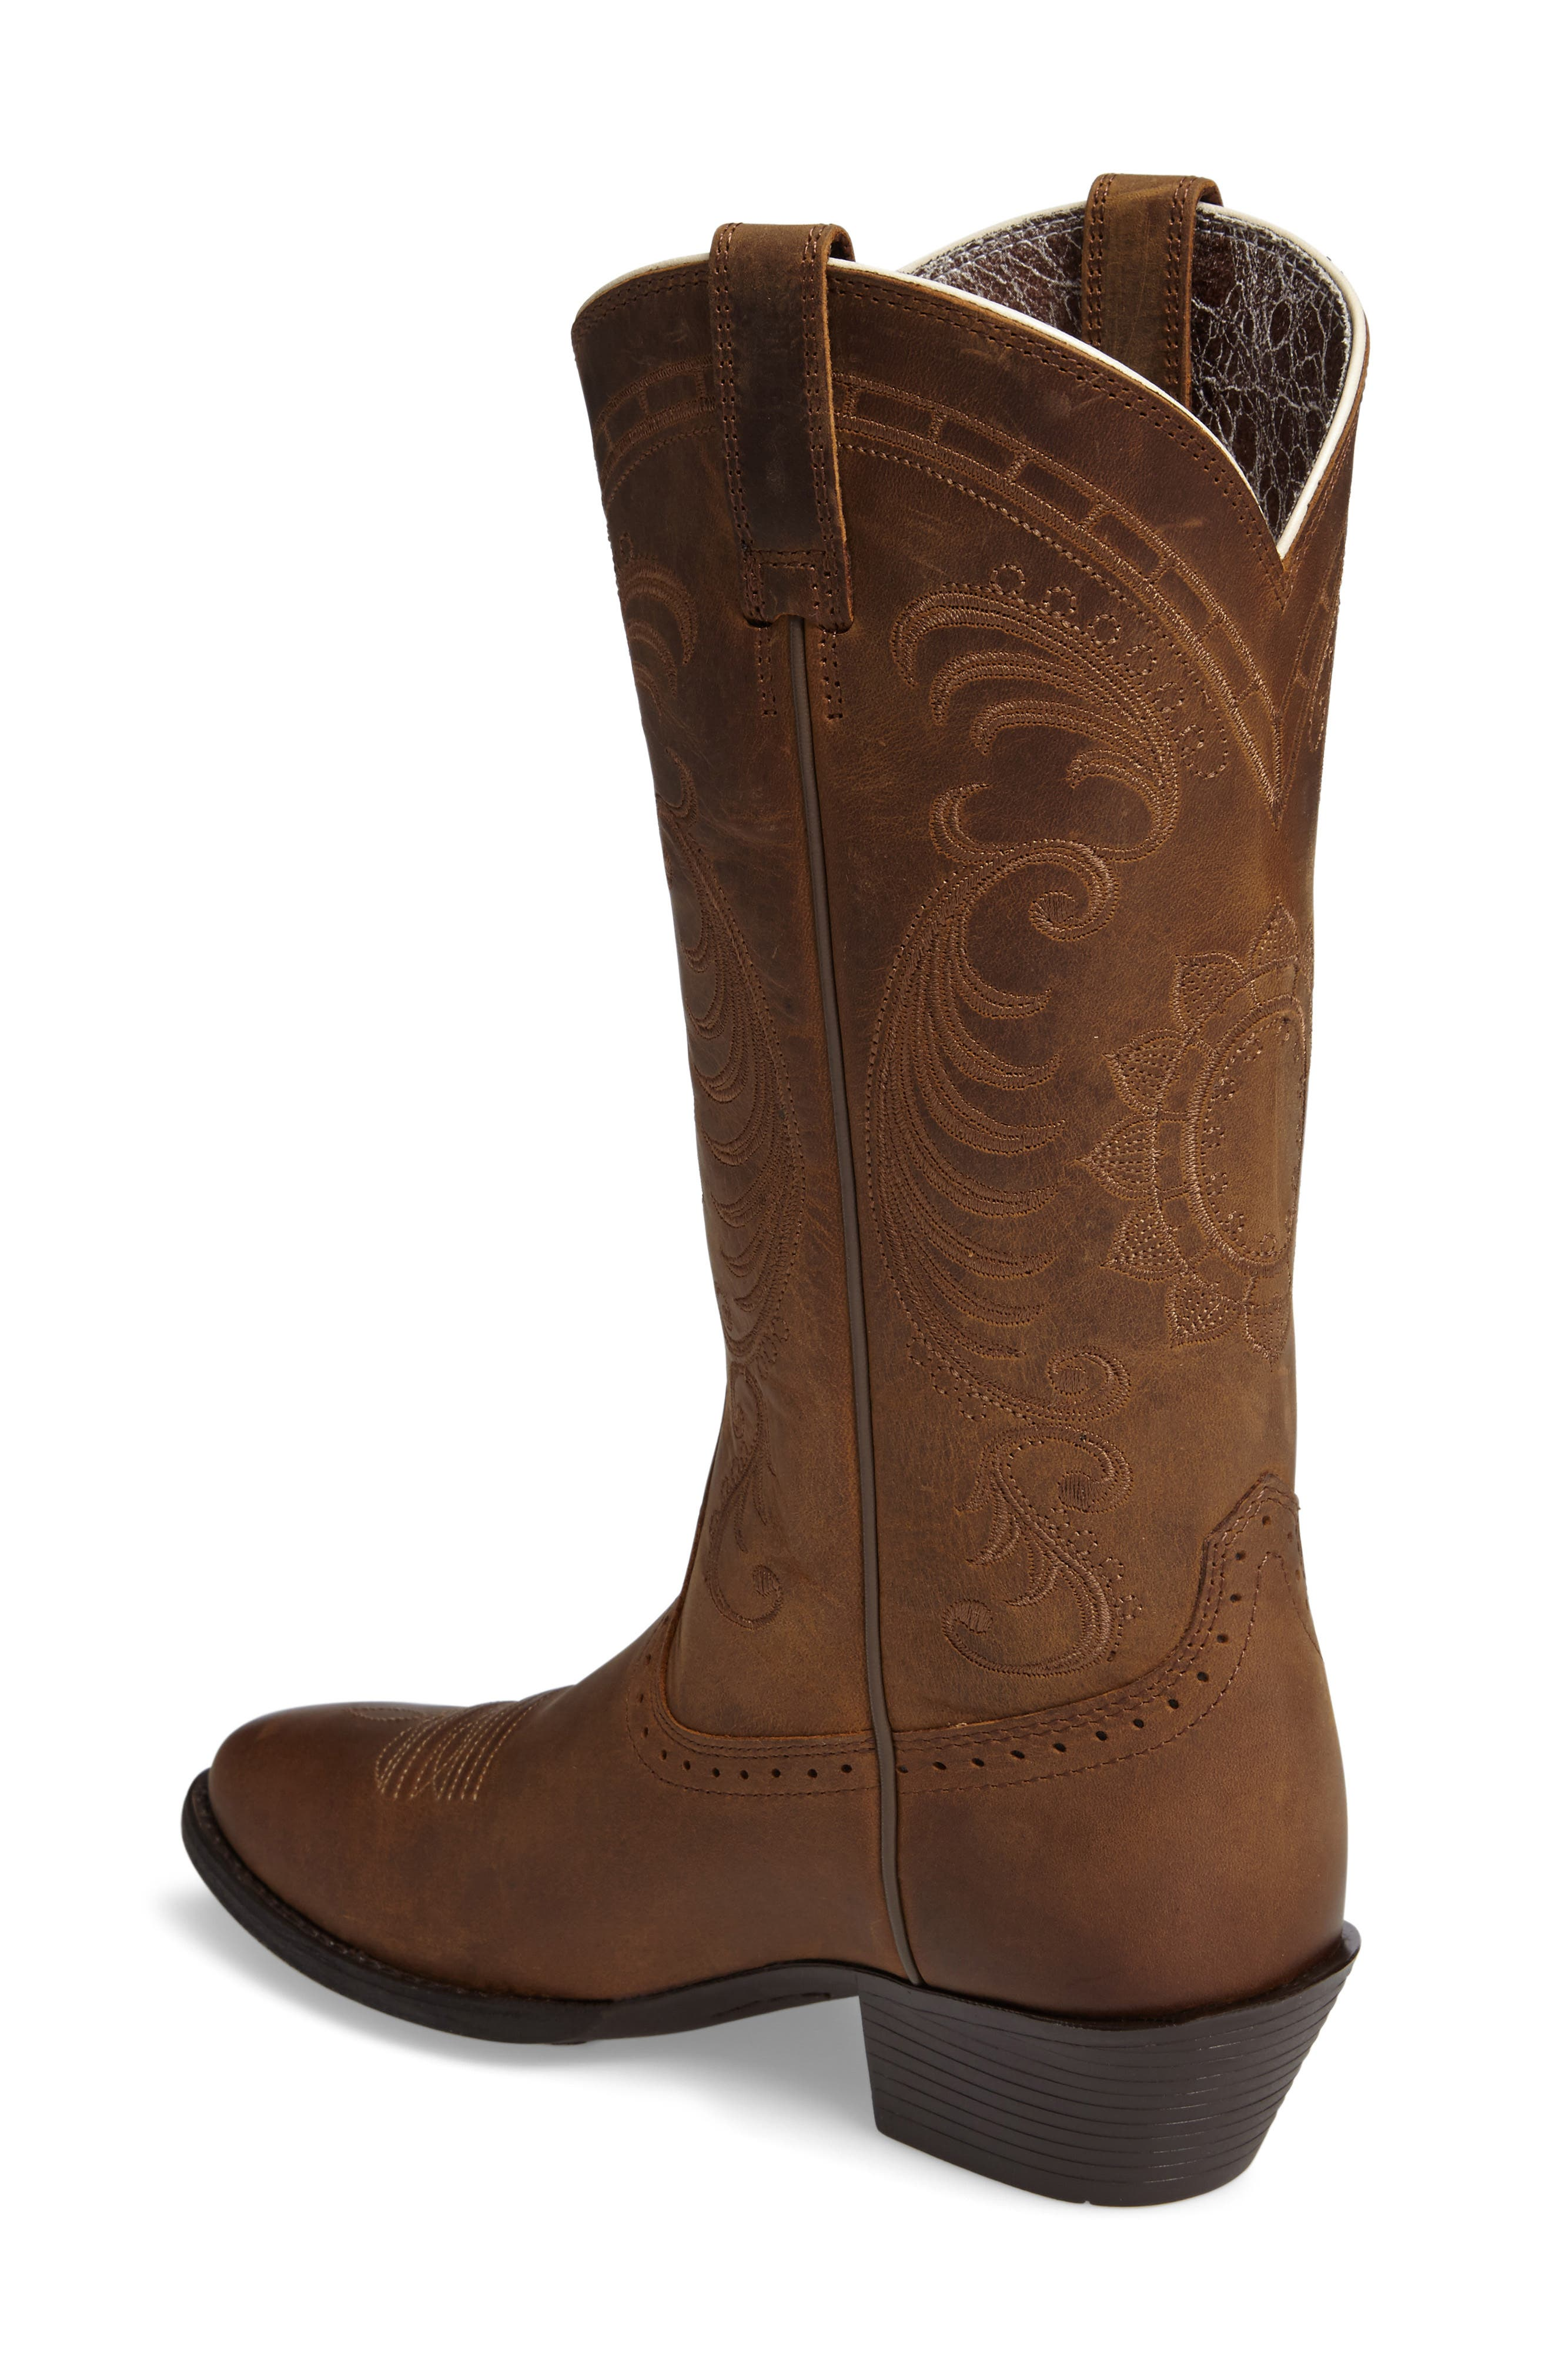 New West Collection - Magnolia Western Boot,                             Alternate thumbnail 2, color,                             DISTRESSED BROWN LEATHER